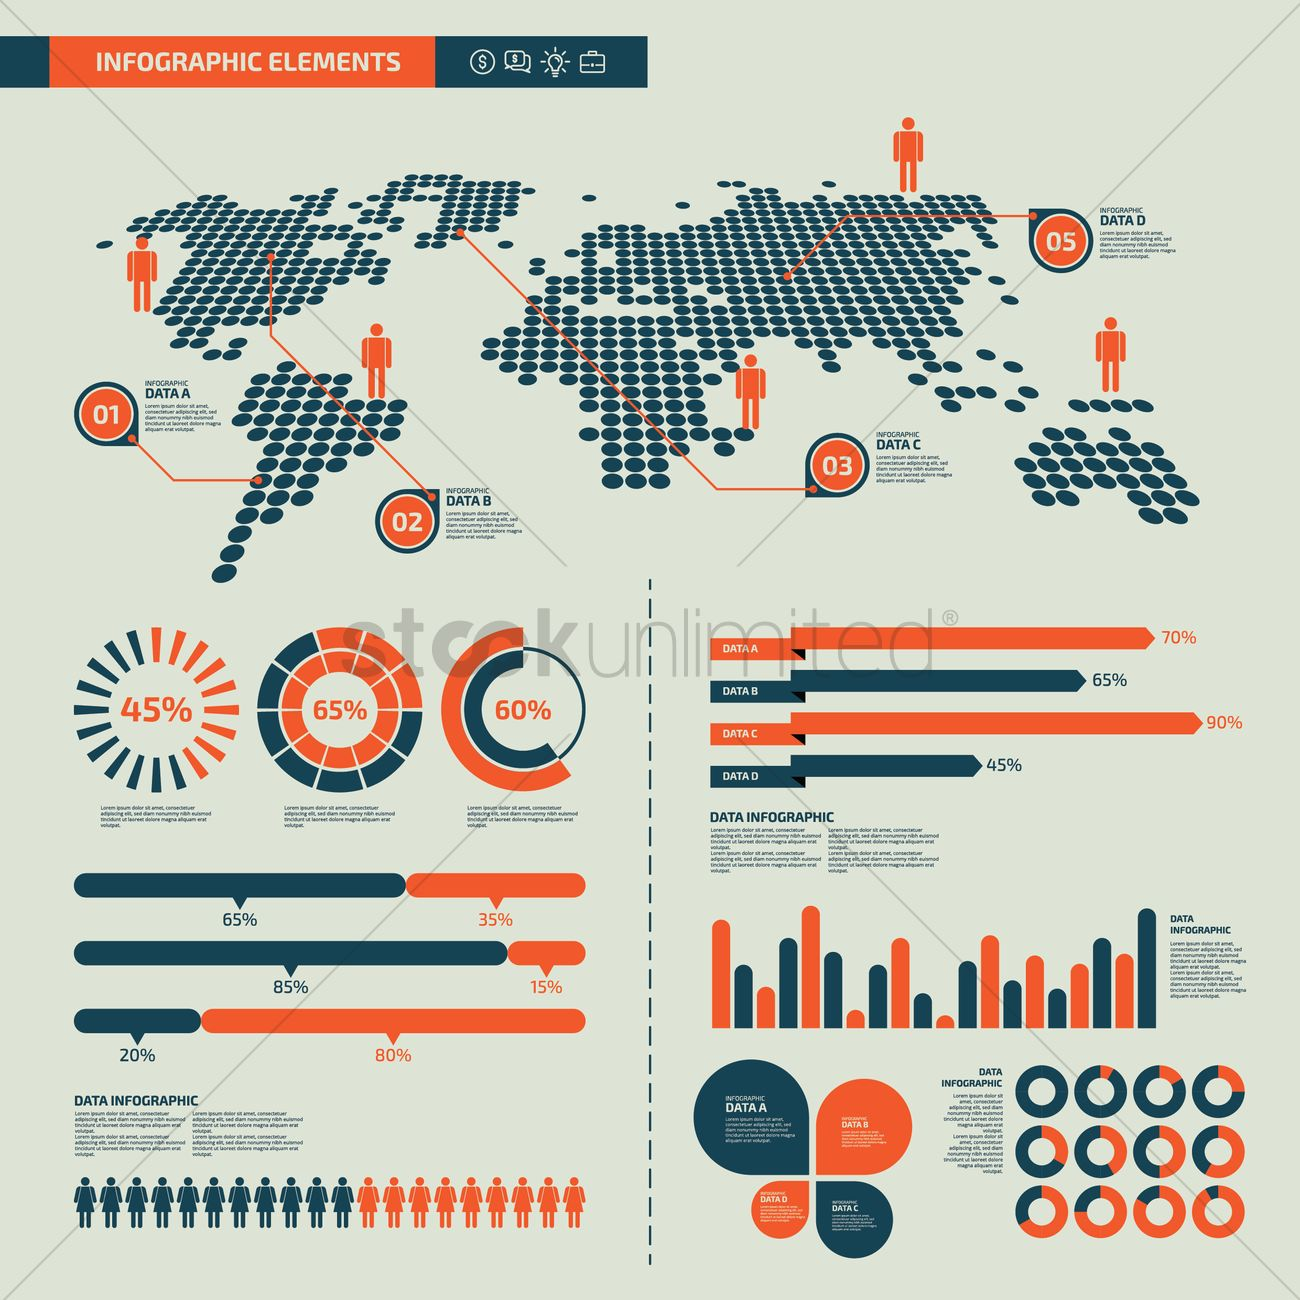 infographic design elements vector image - 1798246 | stockunlimited